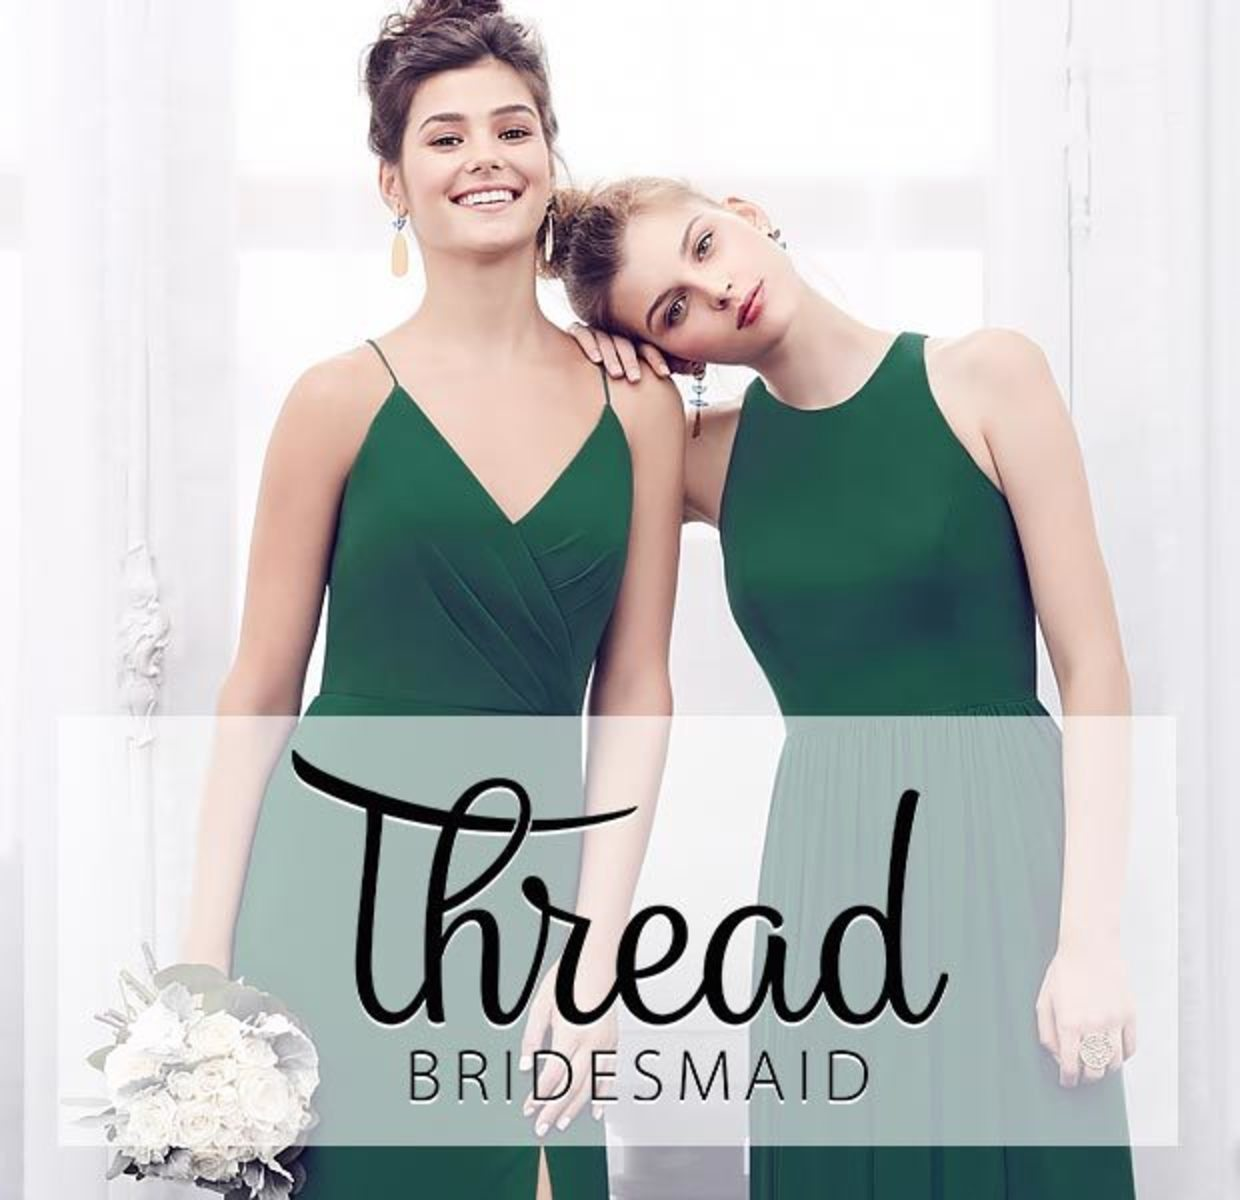 e06d2628935 150 Or Less New Dresses In For 2019 The Dessy Group Email Archive. Best Er  Bridesmaid Dresses